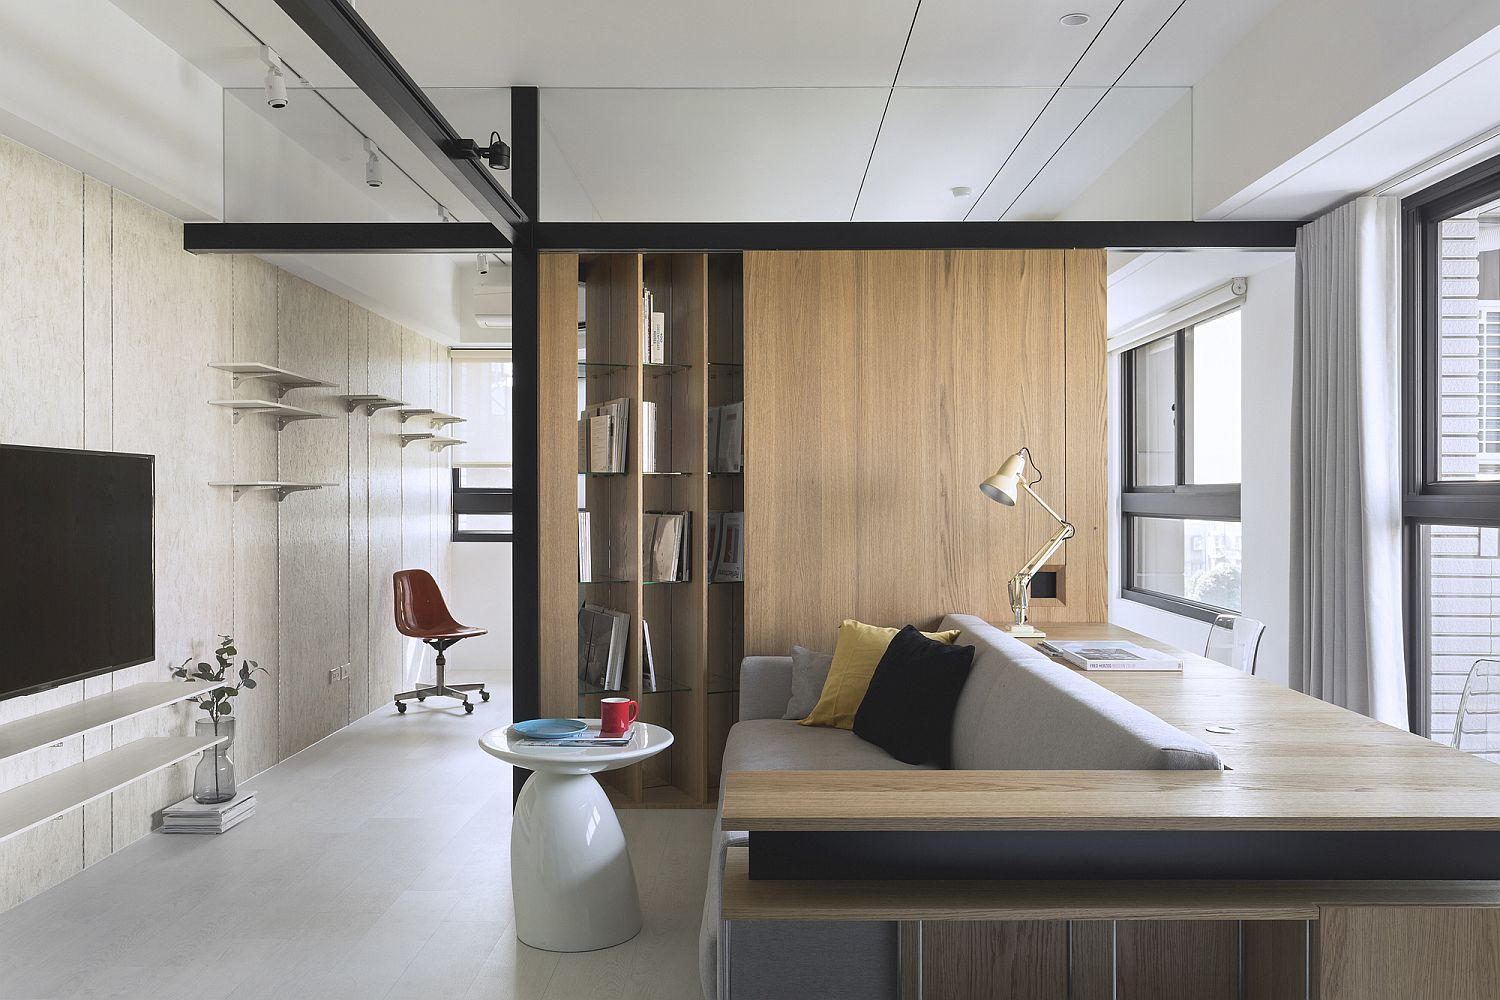 Mirrors and wood help create a cool and angled bookshelf in the living room